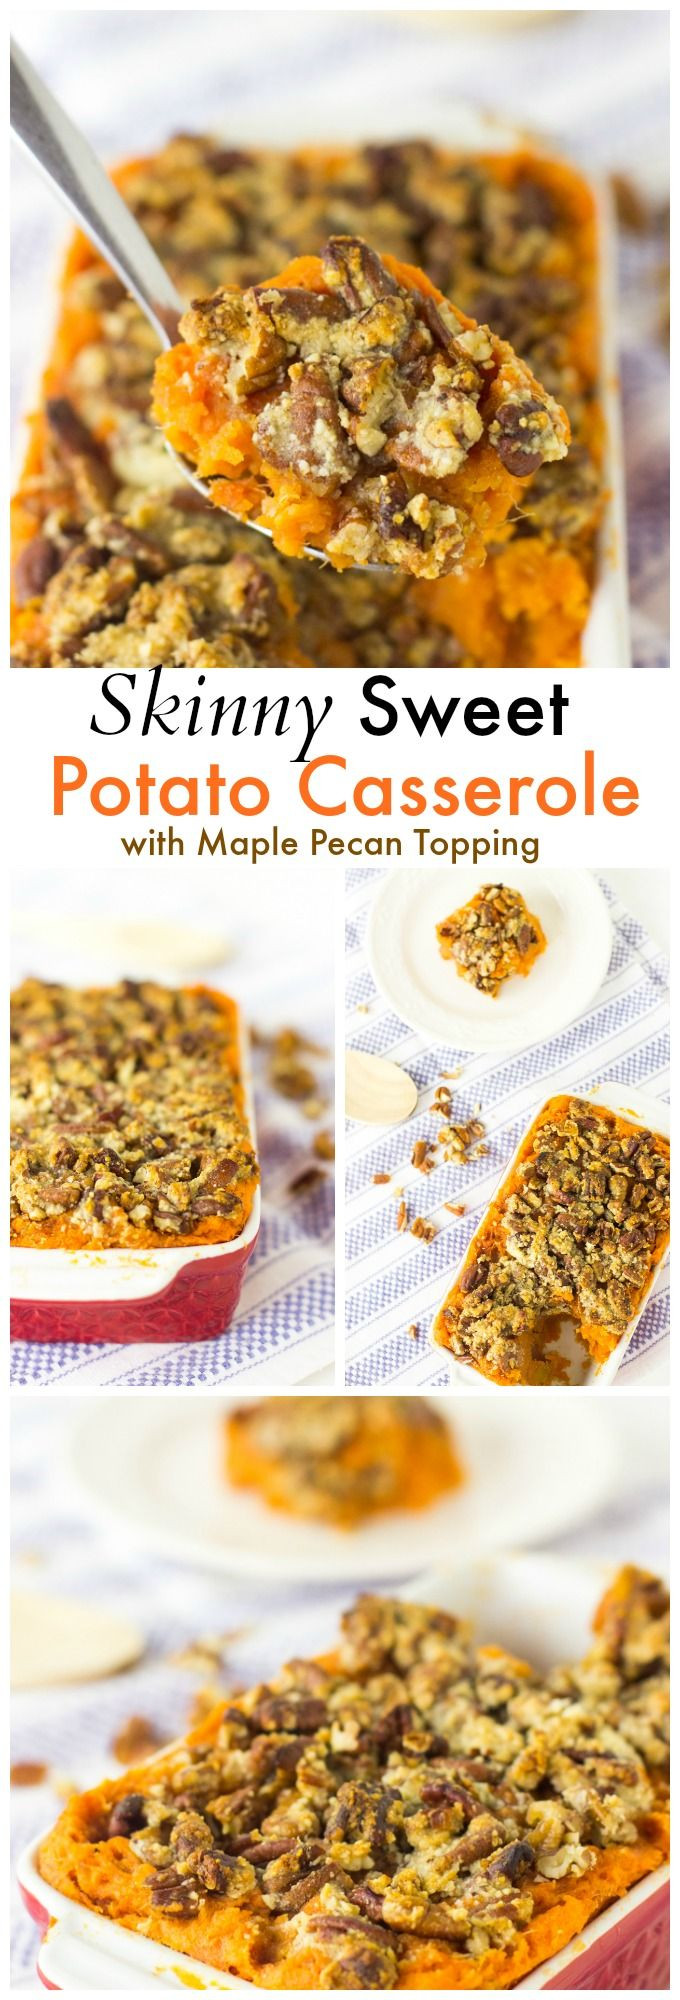 Vegan Sweet Potato Recipes Thanksgiving  138 best Healthy Thanksgiving Recipes images on Pinterest